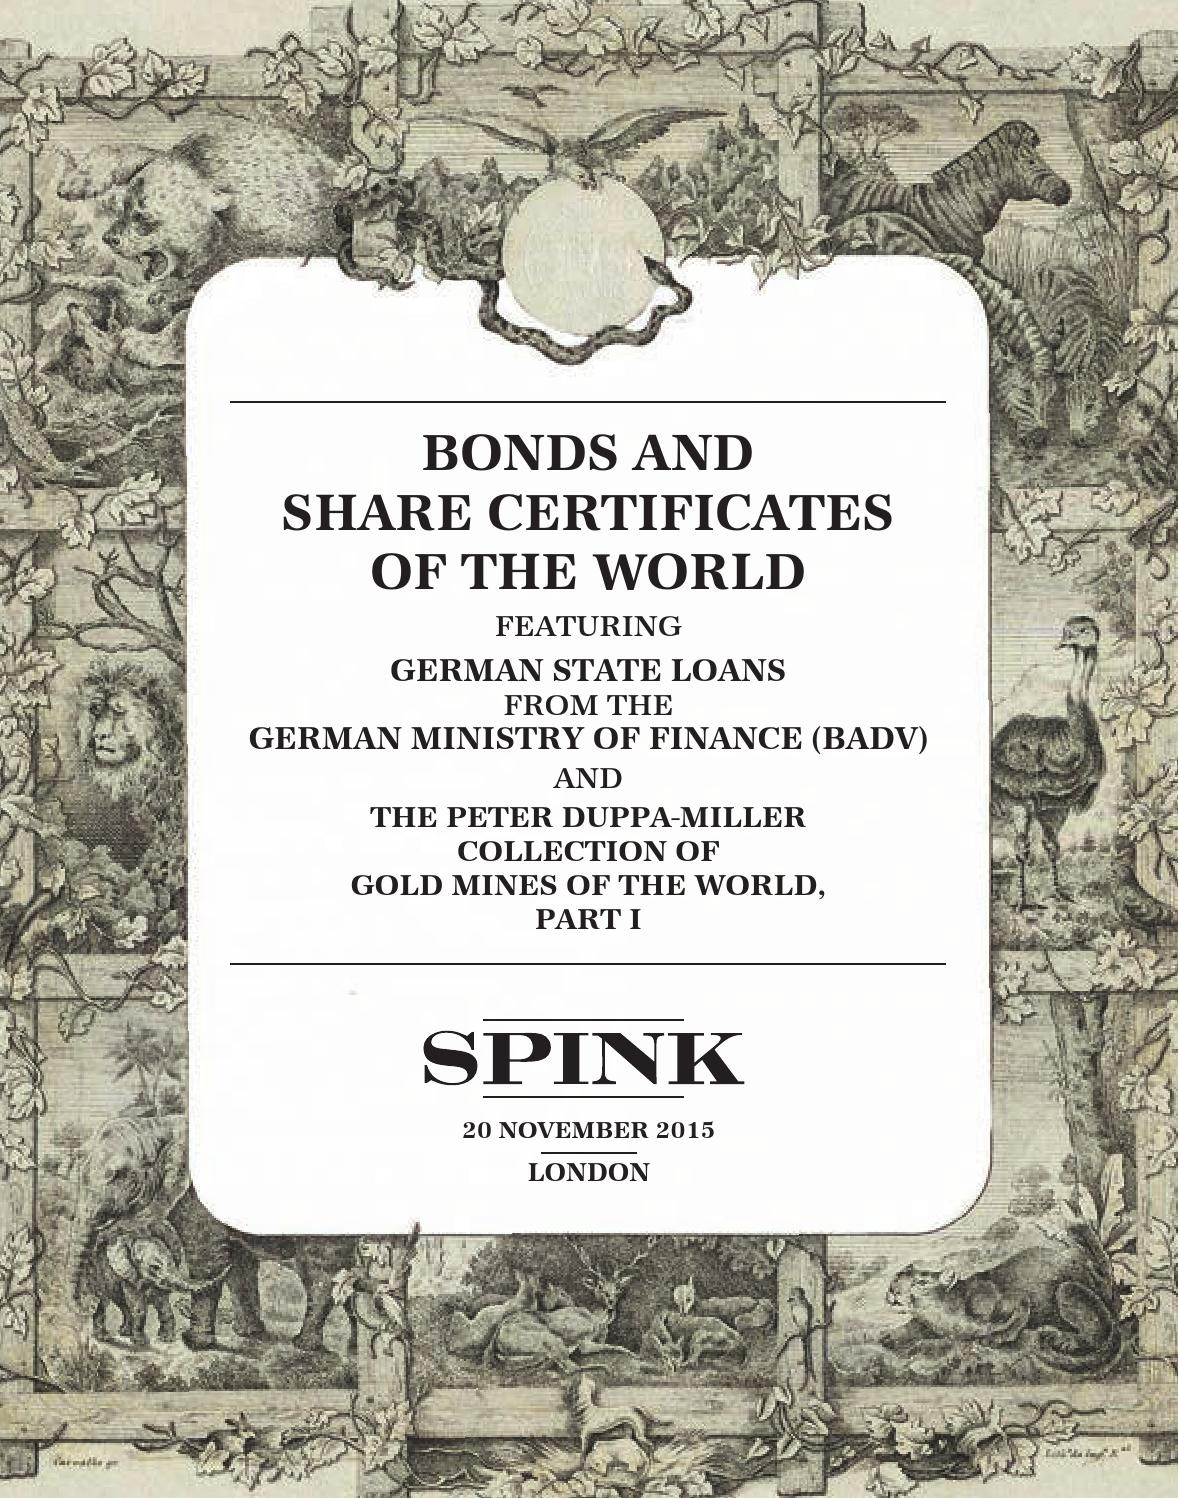 Holz In Form Schreinerei Amöneburg Bonds And Share Certificates Of The World 15019 By Spink And Son